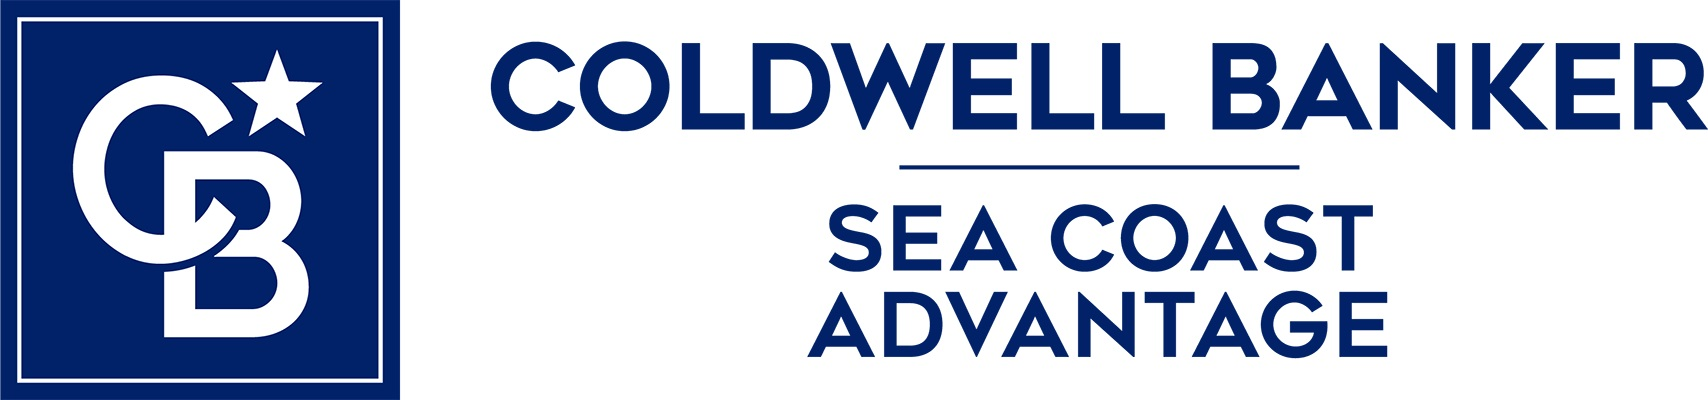 Shelly Day - Coldwell Banker Sea Coast Advantage Realty